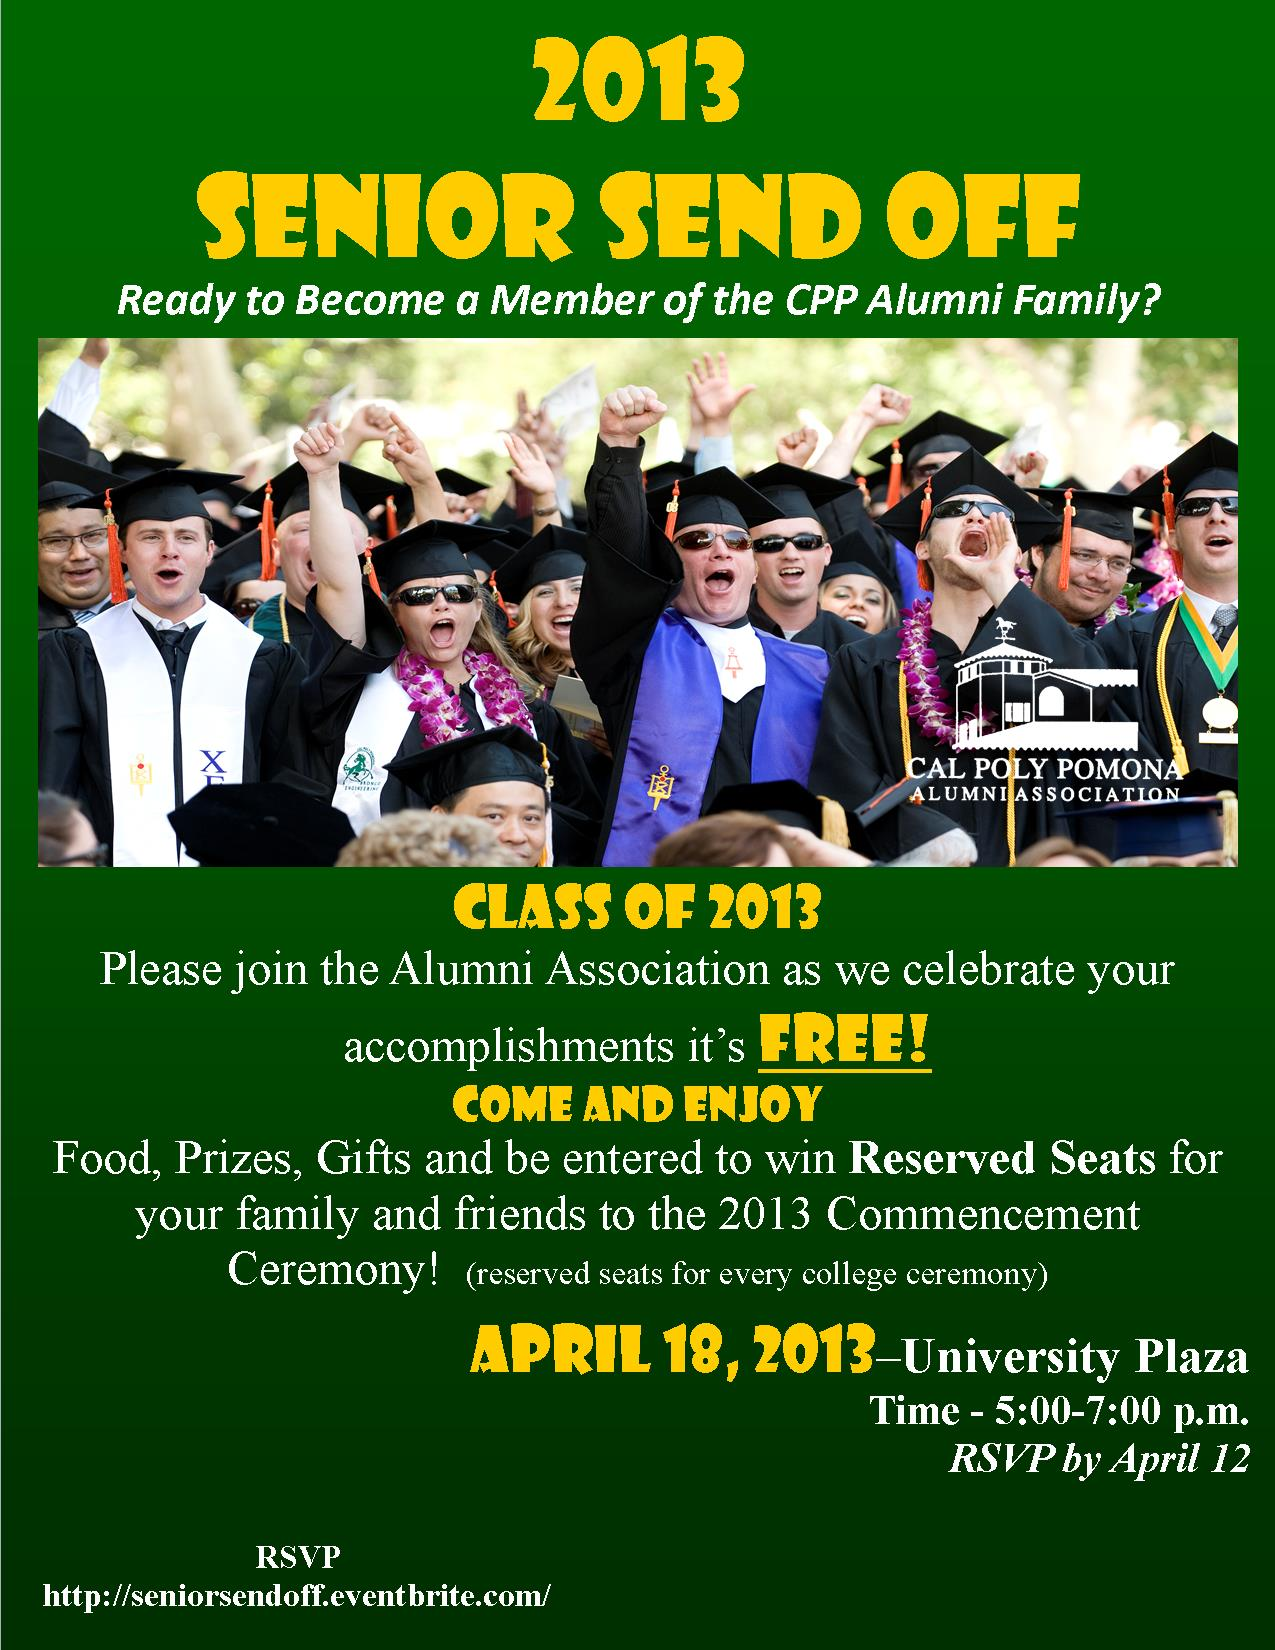 Graduates Celebrating - Invitation to Senior Send Off 2013